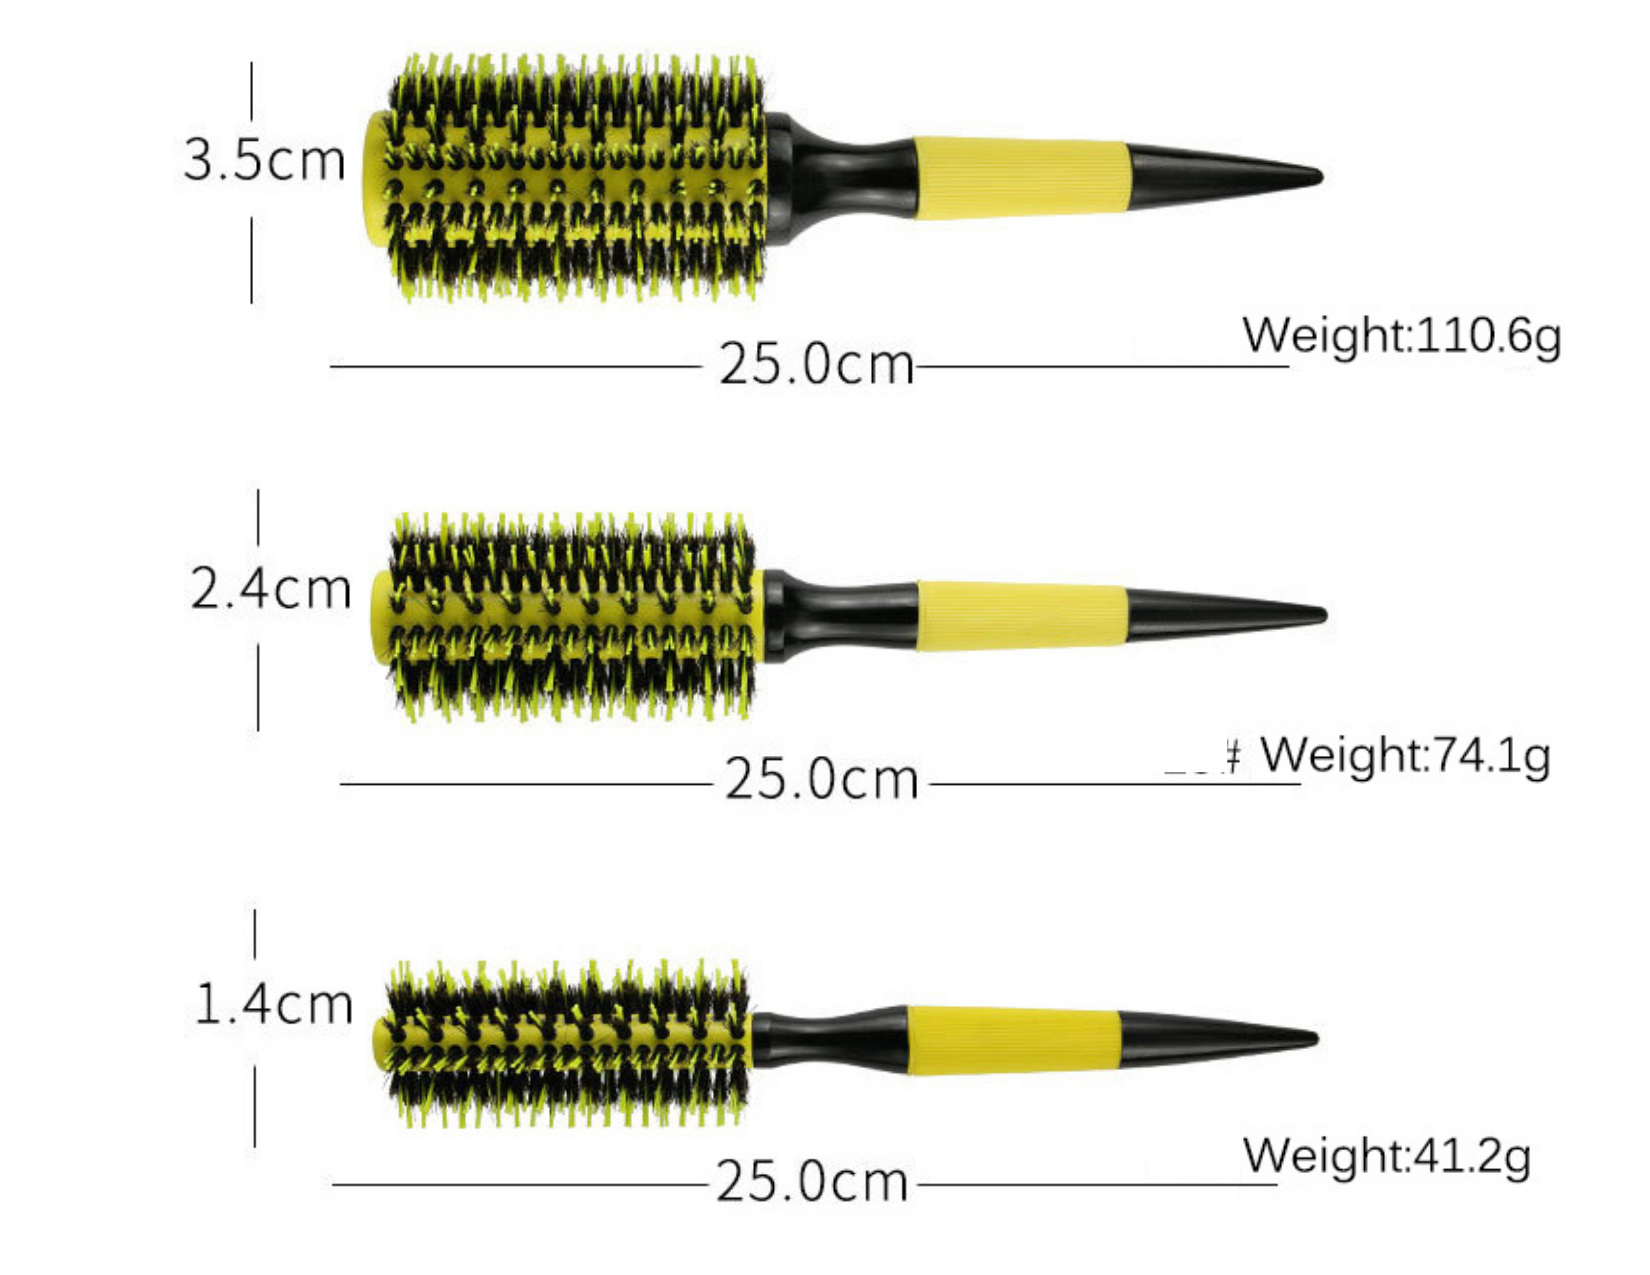 Hair Brush bright yellow round straightening - 4 options for your choice ( #3.5cm / #2.4cm / #1.4cm / Set 3 pieces )